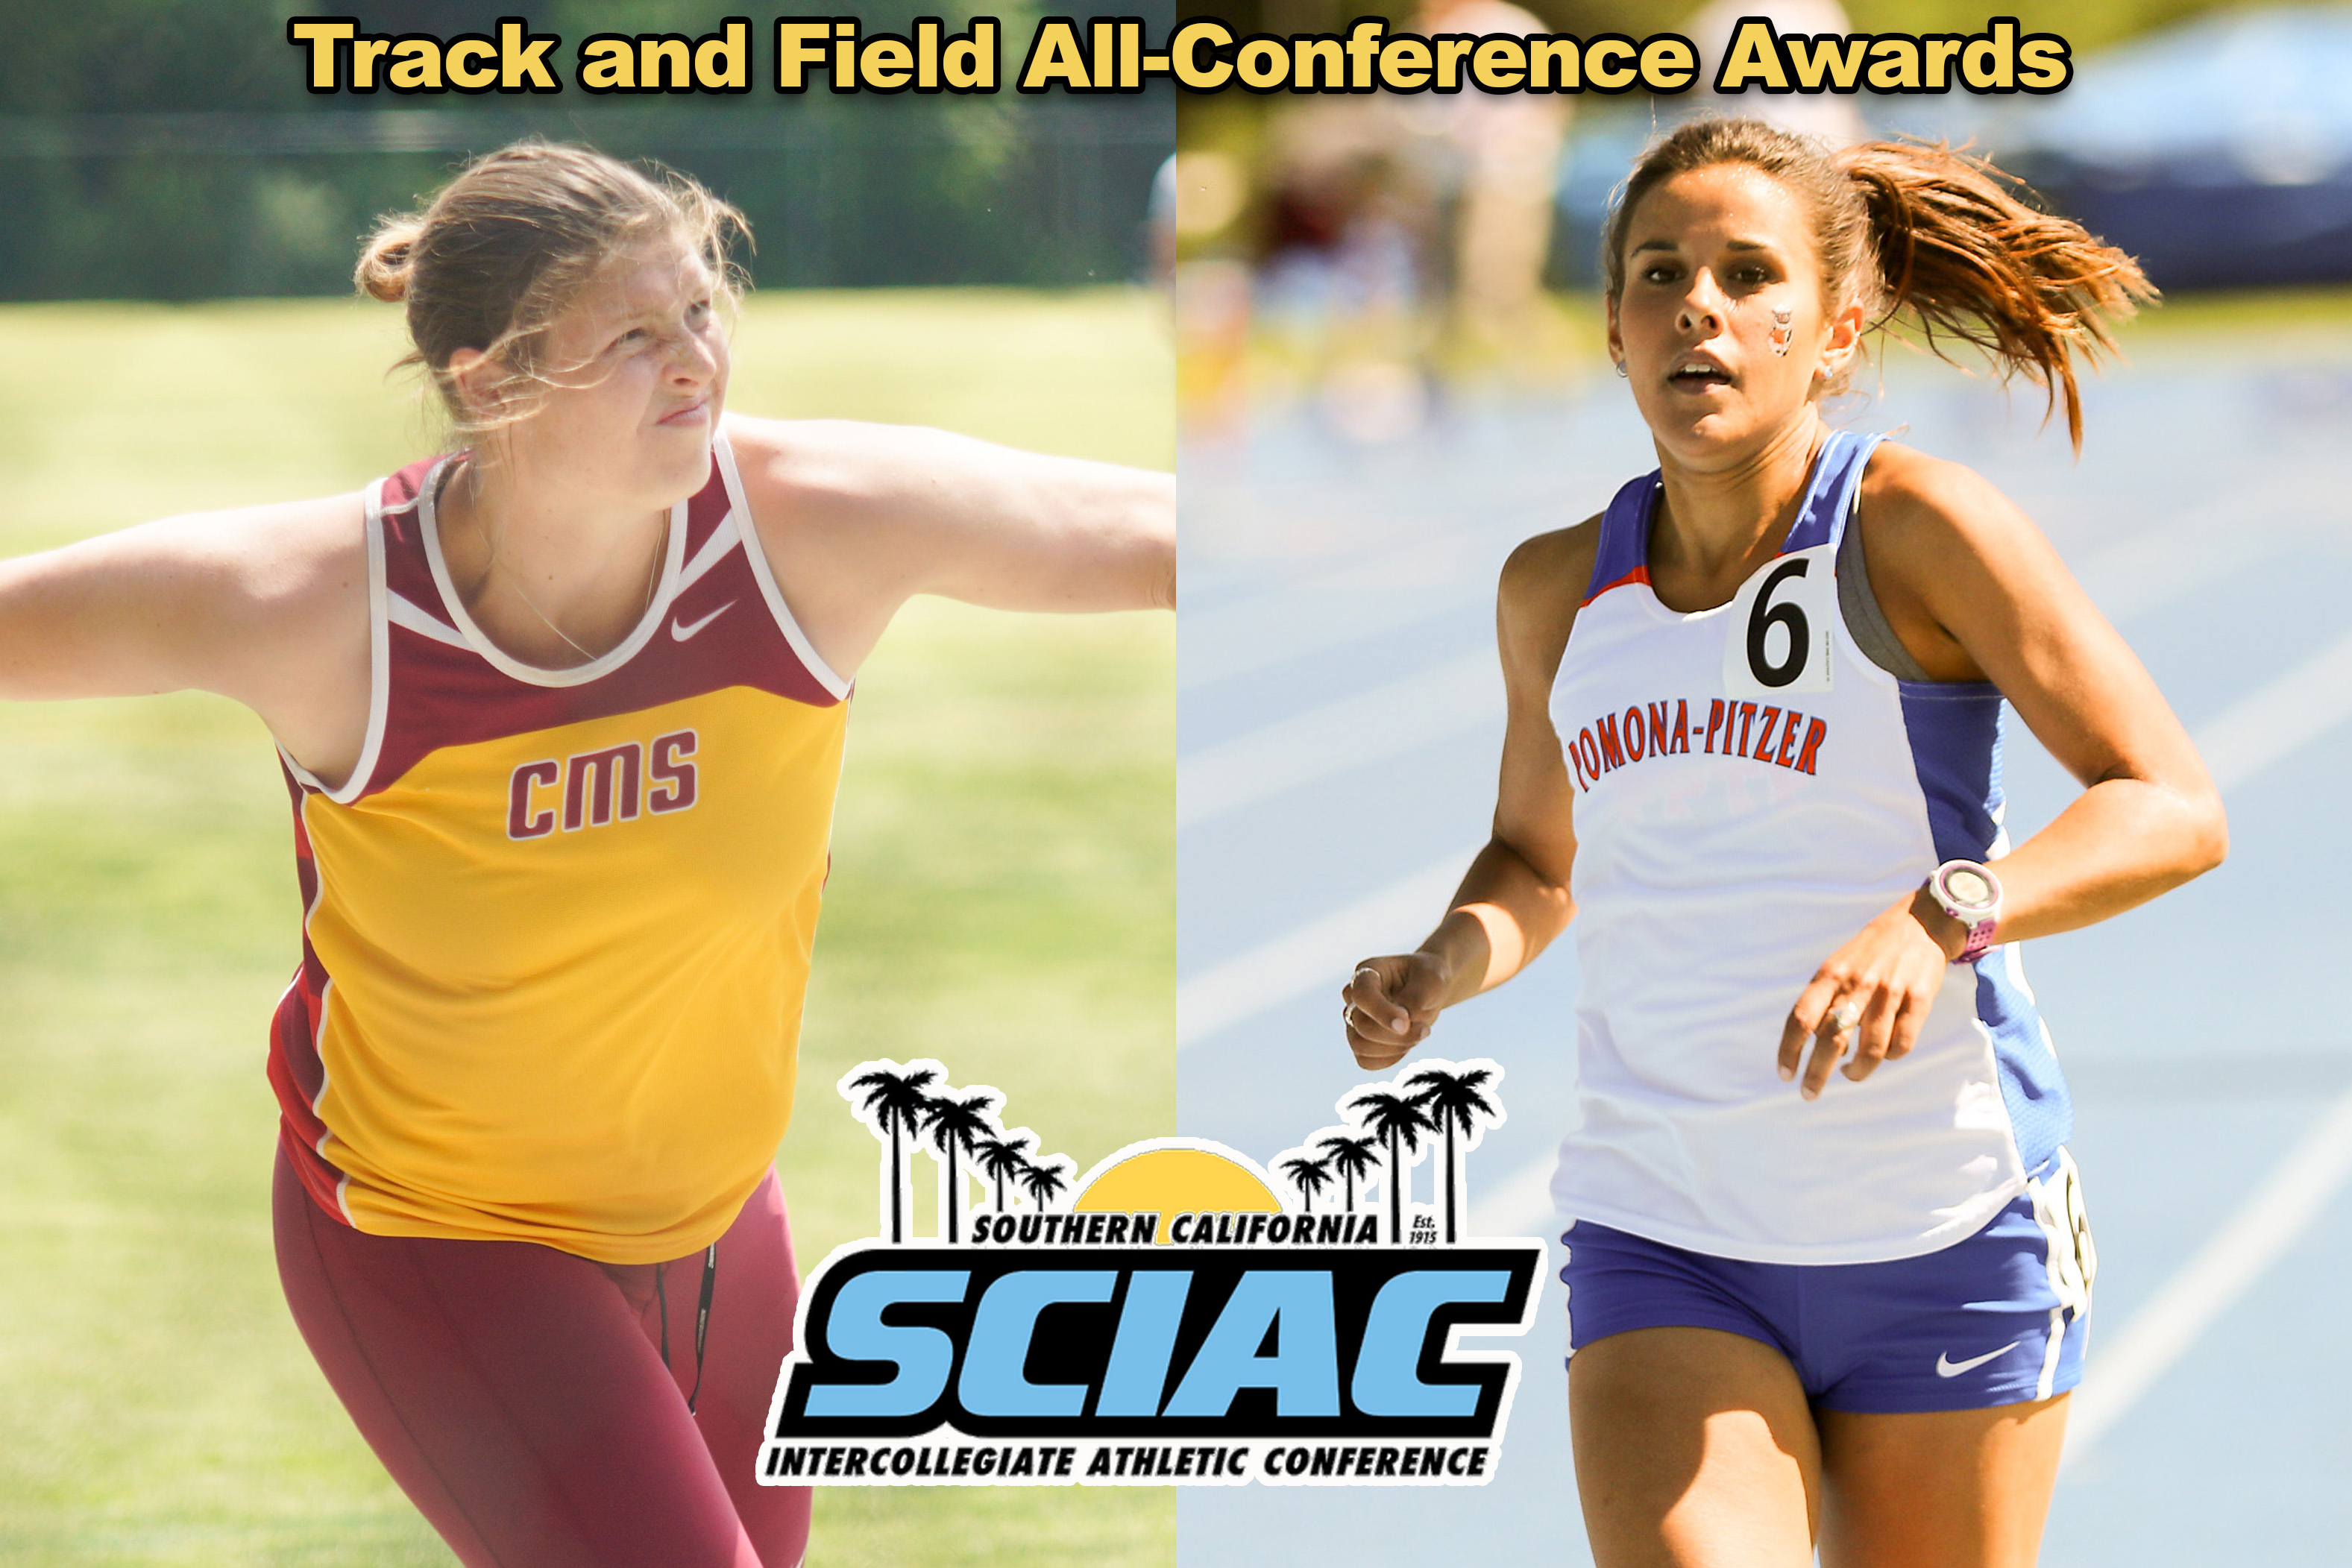 SCIAC All-Conference Women's Track and Field